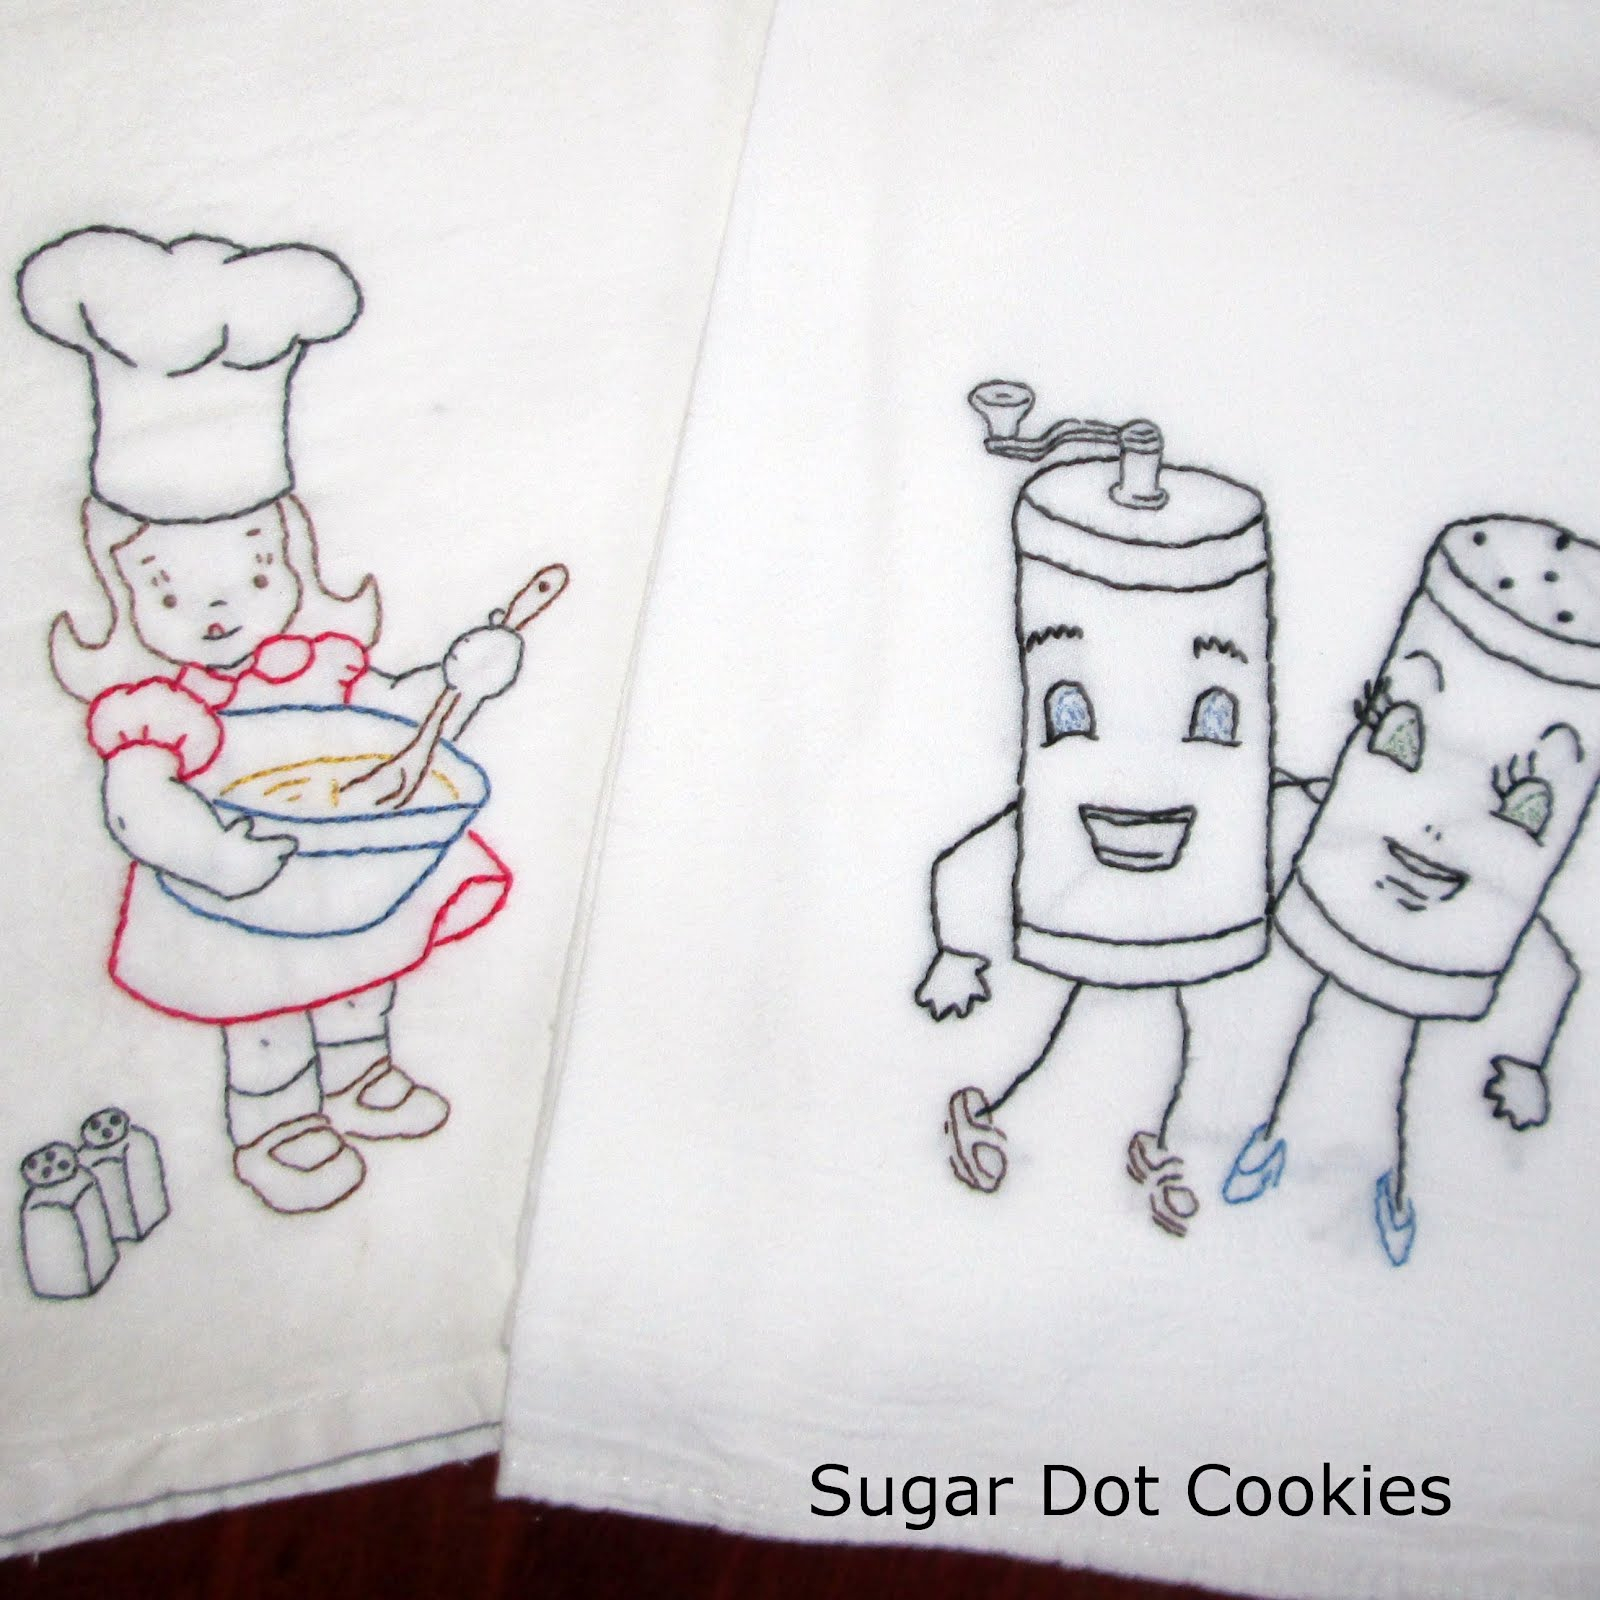 Kitchen Towel Embroidery Patterns Kitchen Embroidery Designs Troop138